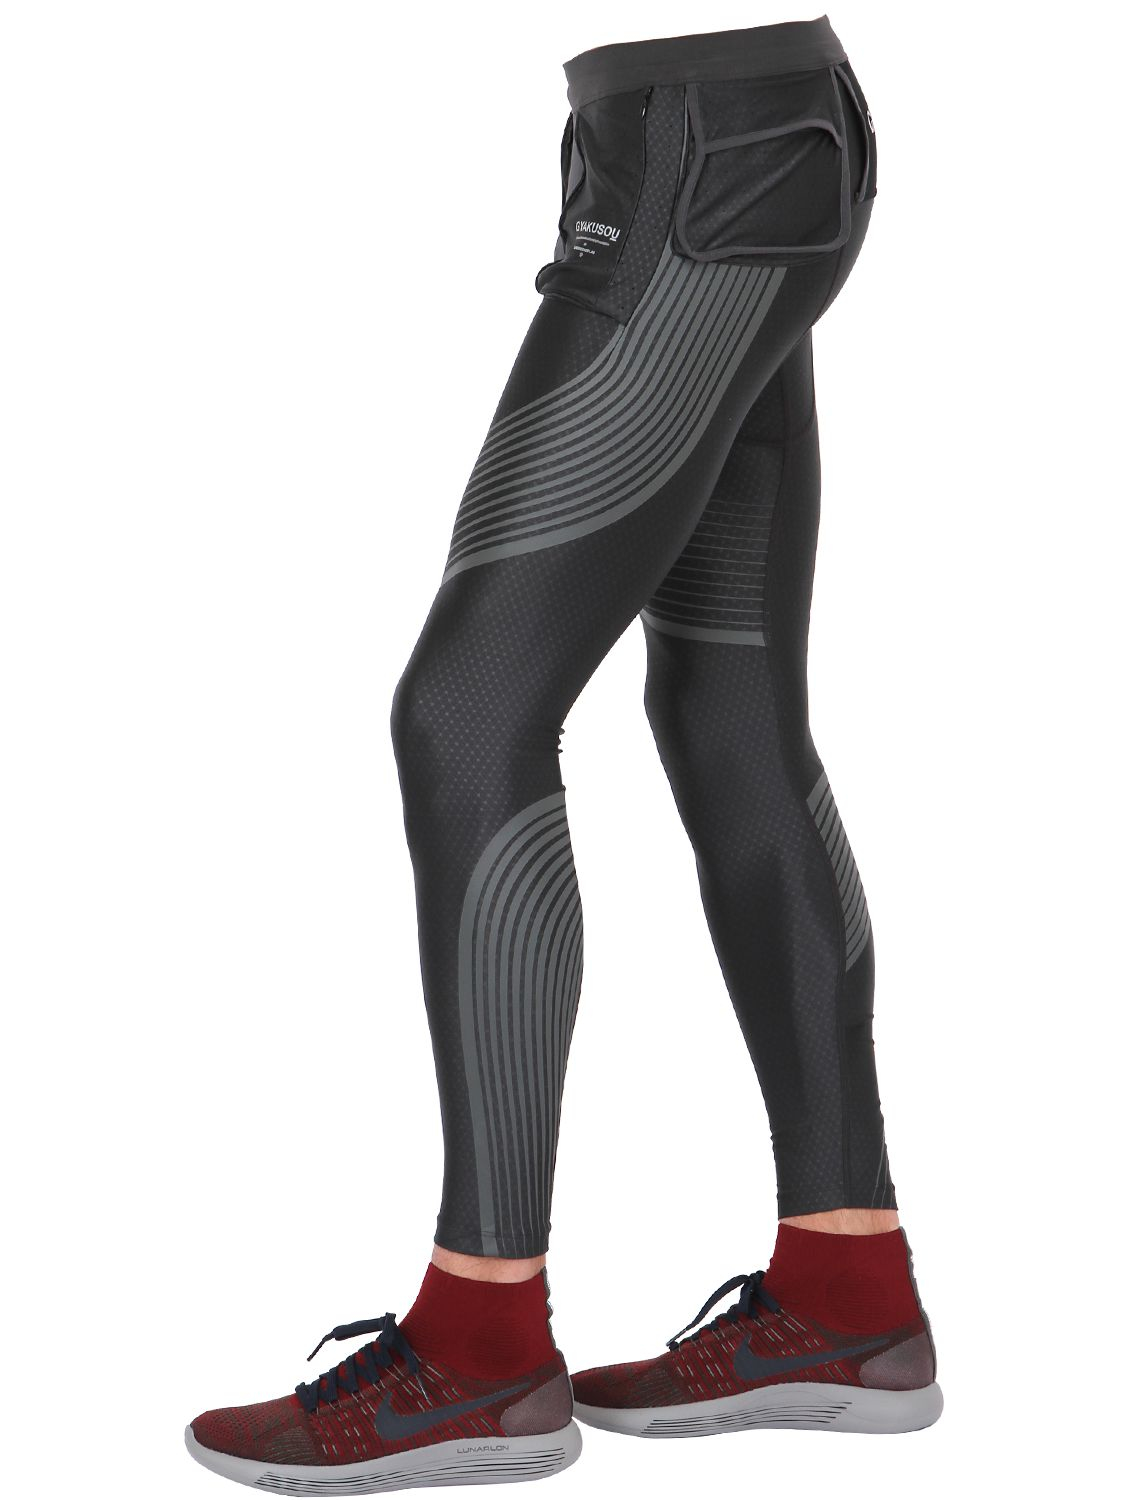 Accomplish everything with stretchy and comfortable capri workout leggings and tights for women. The North Face has workout pants in an array of colors and patterns.